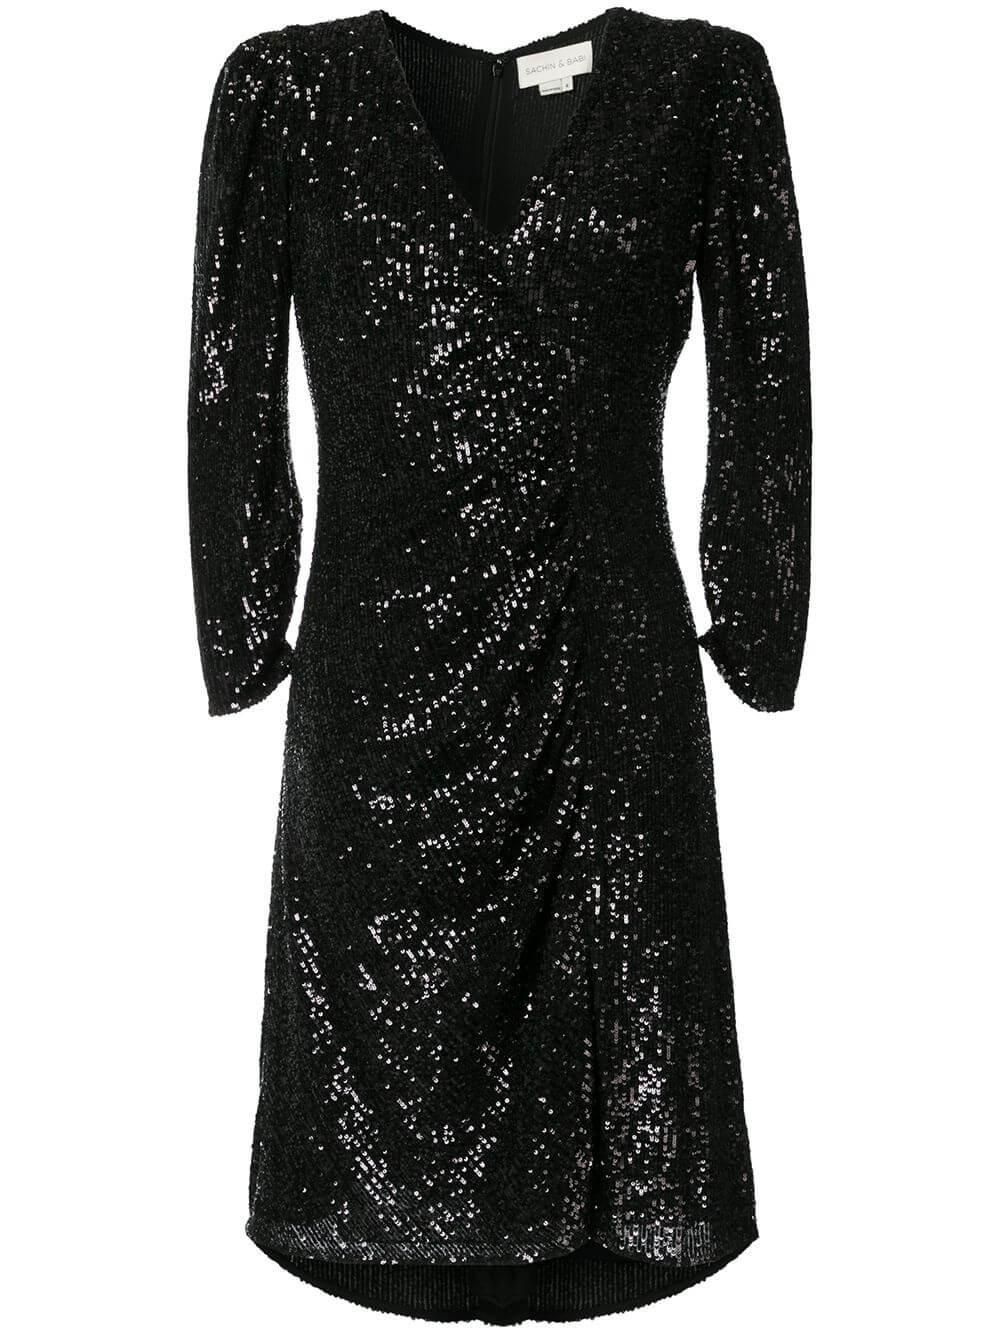 Kayla V-Neck Puff Sleeve Sequin Dress